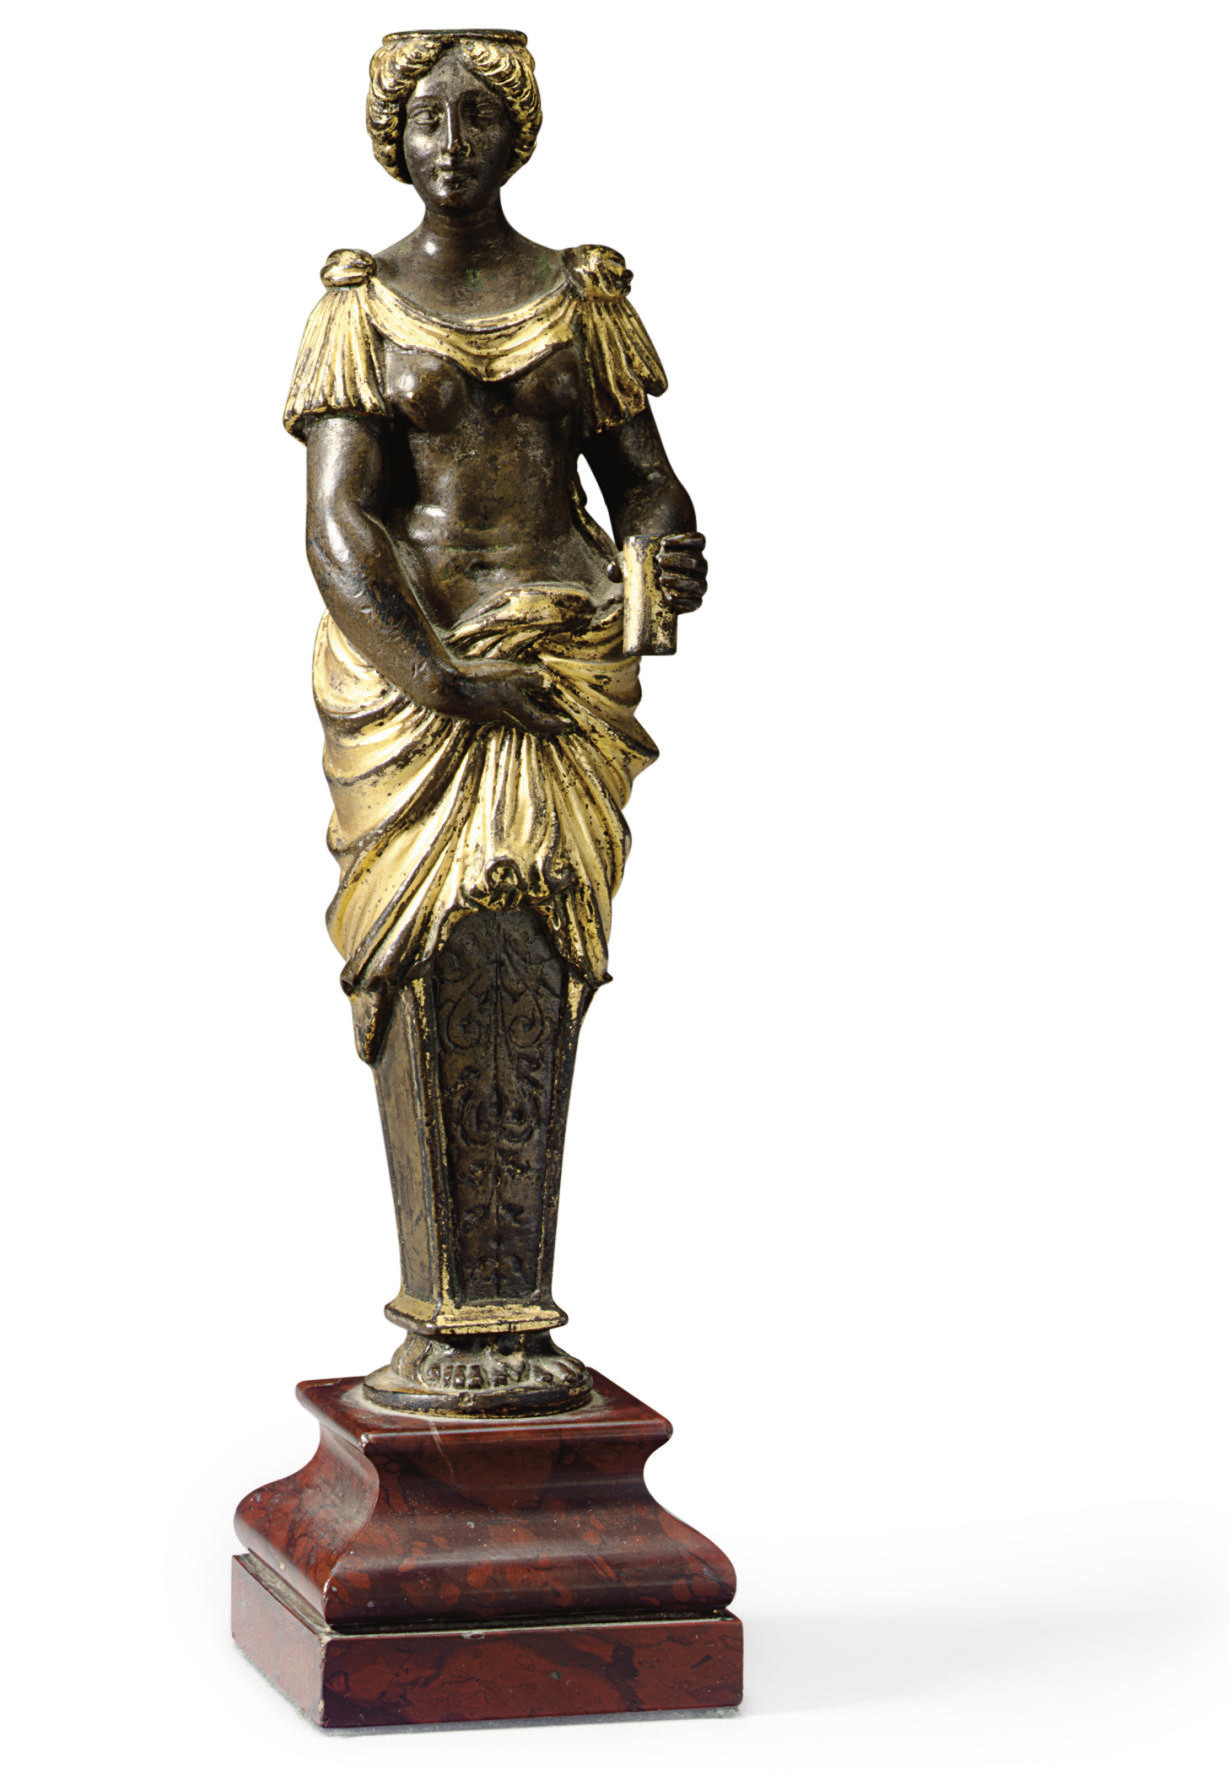 A GILT-BRONZE TERM FIGURE OF A